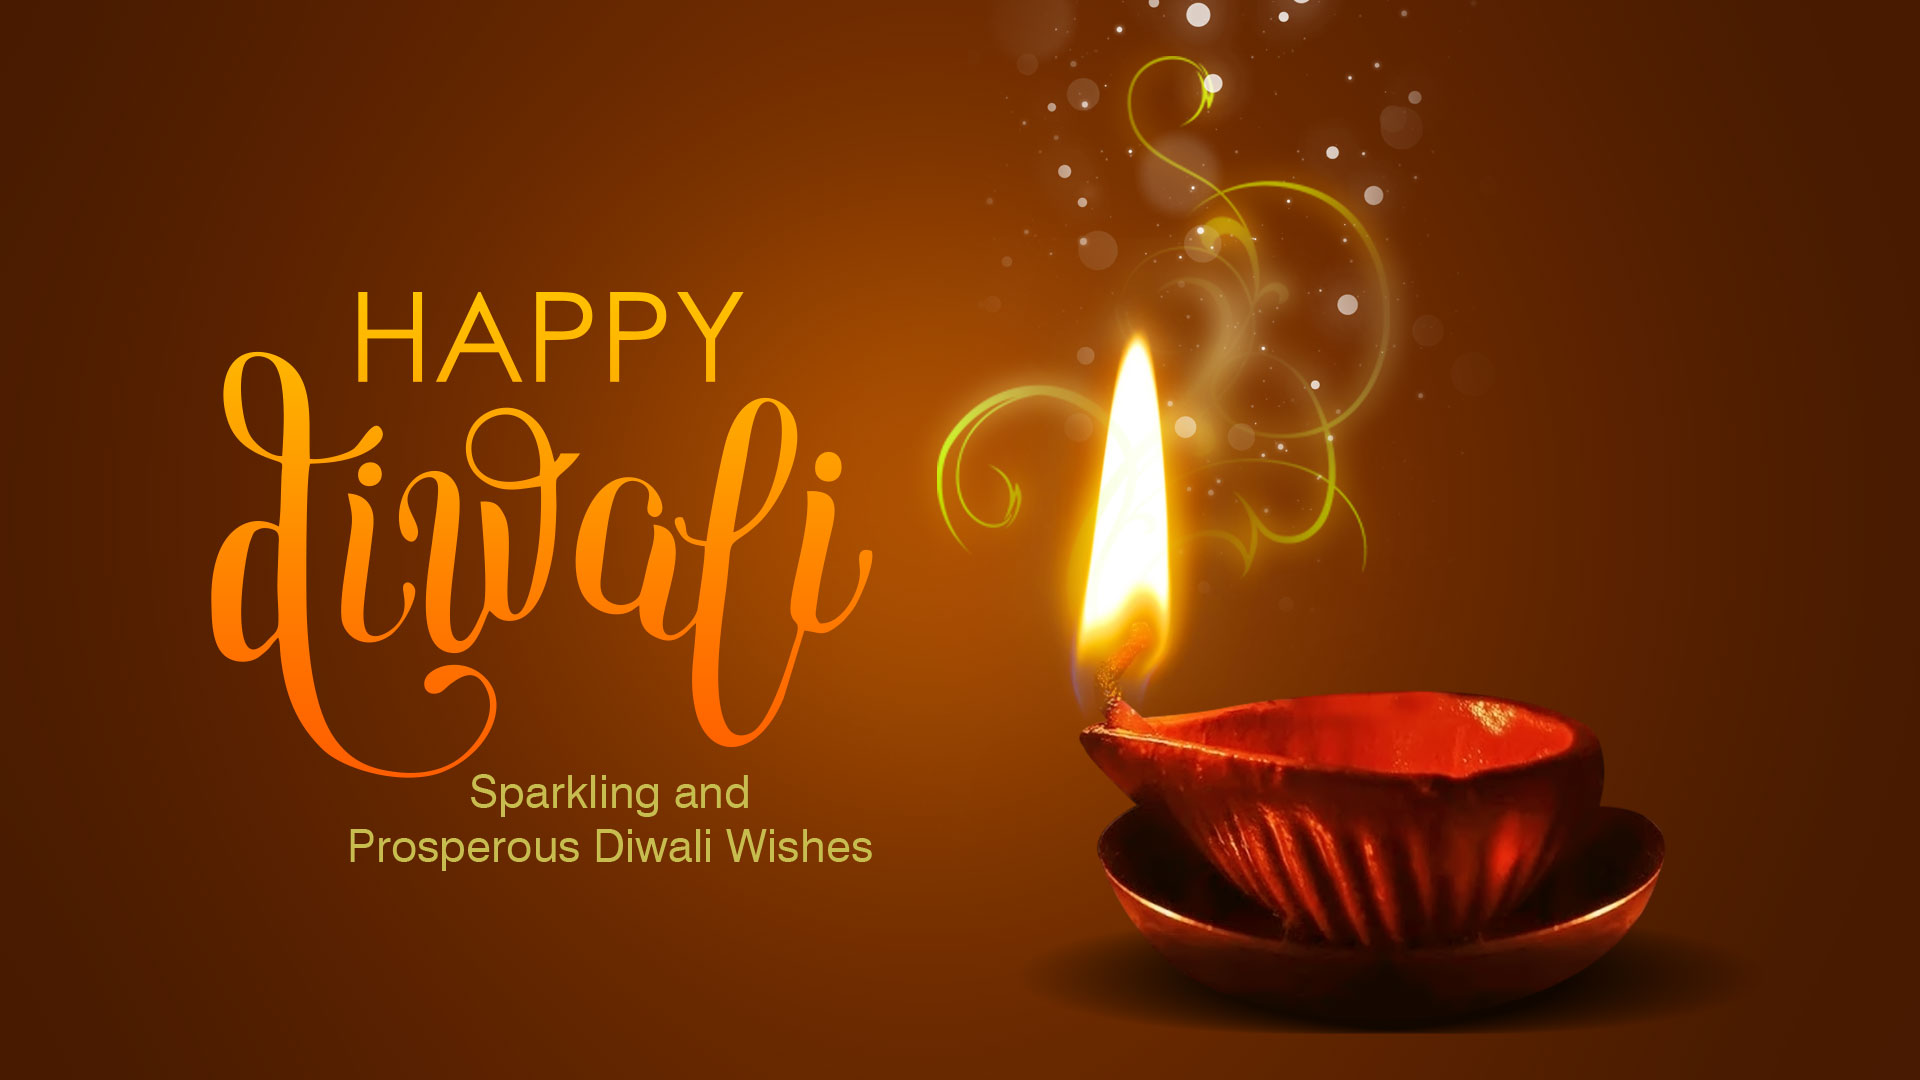 Diwali Greeting Card Diwali Greetings Diwali Wishes Happy Diwali